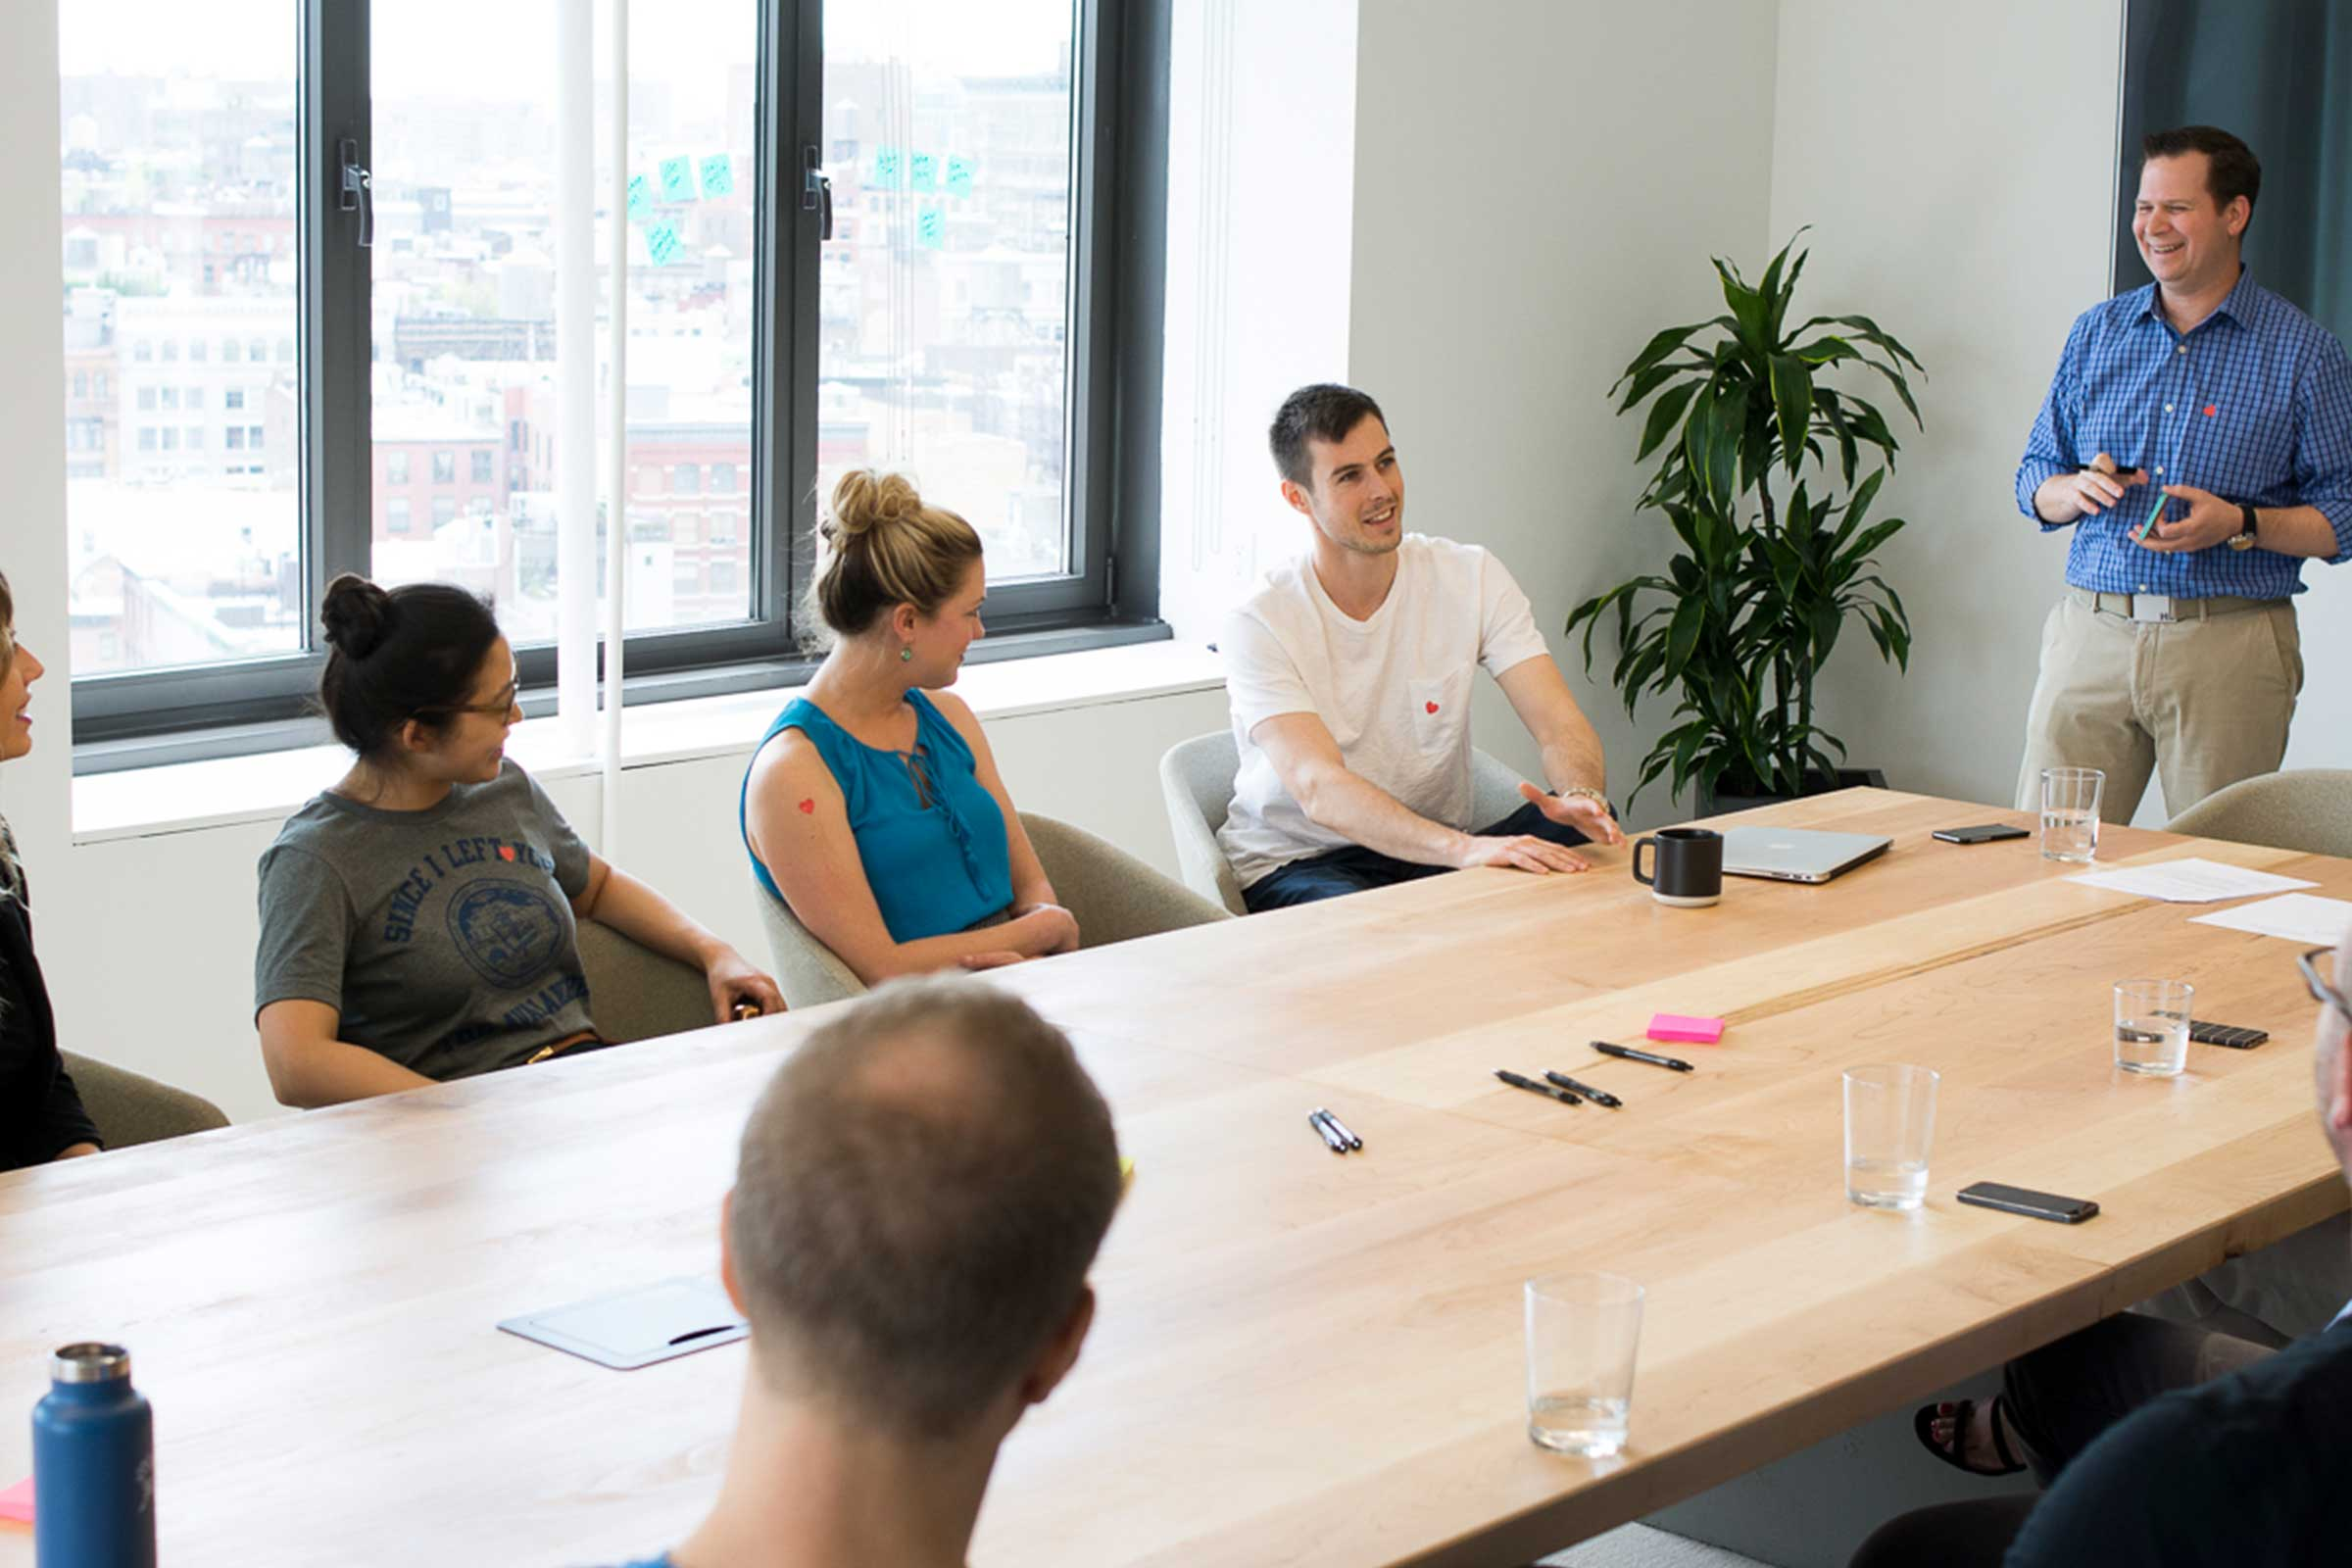 planning-a-successful-all-hands-meeting